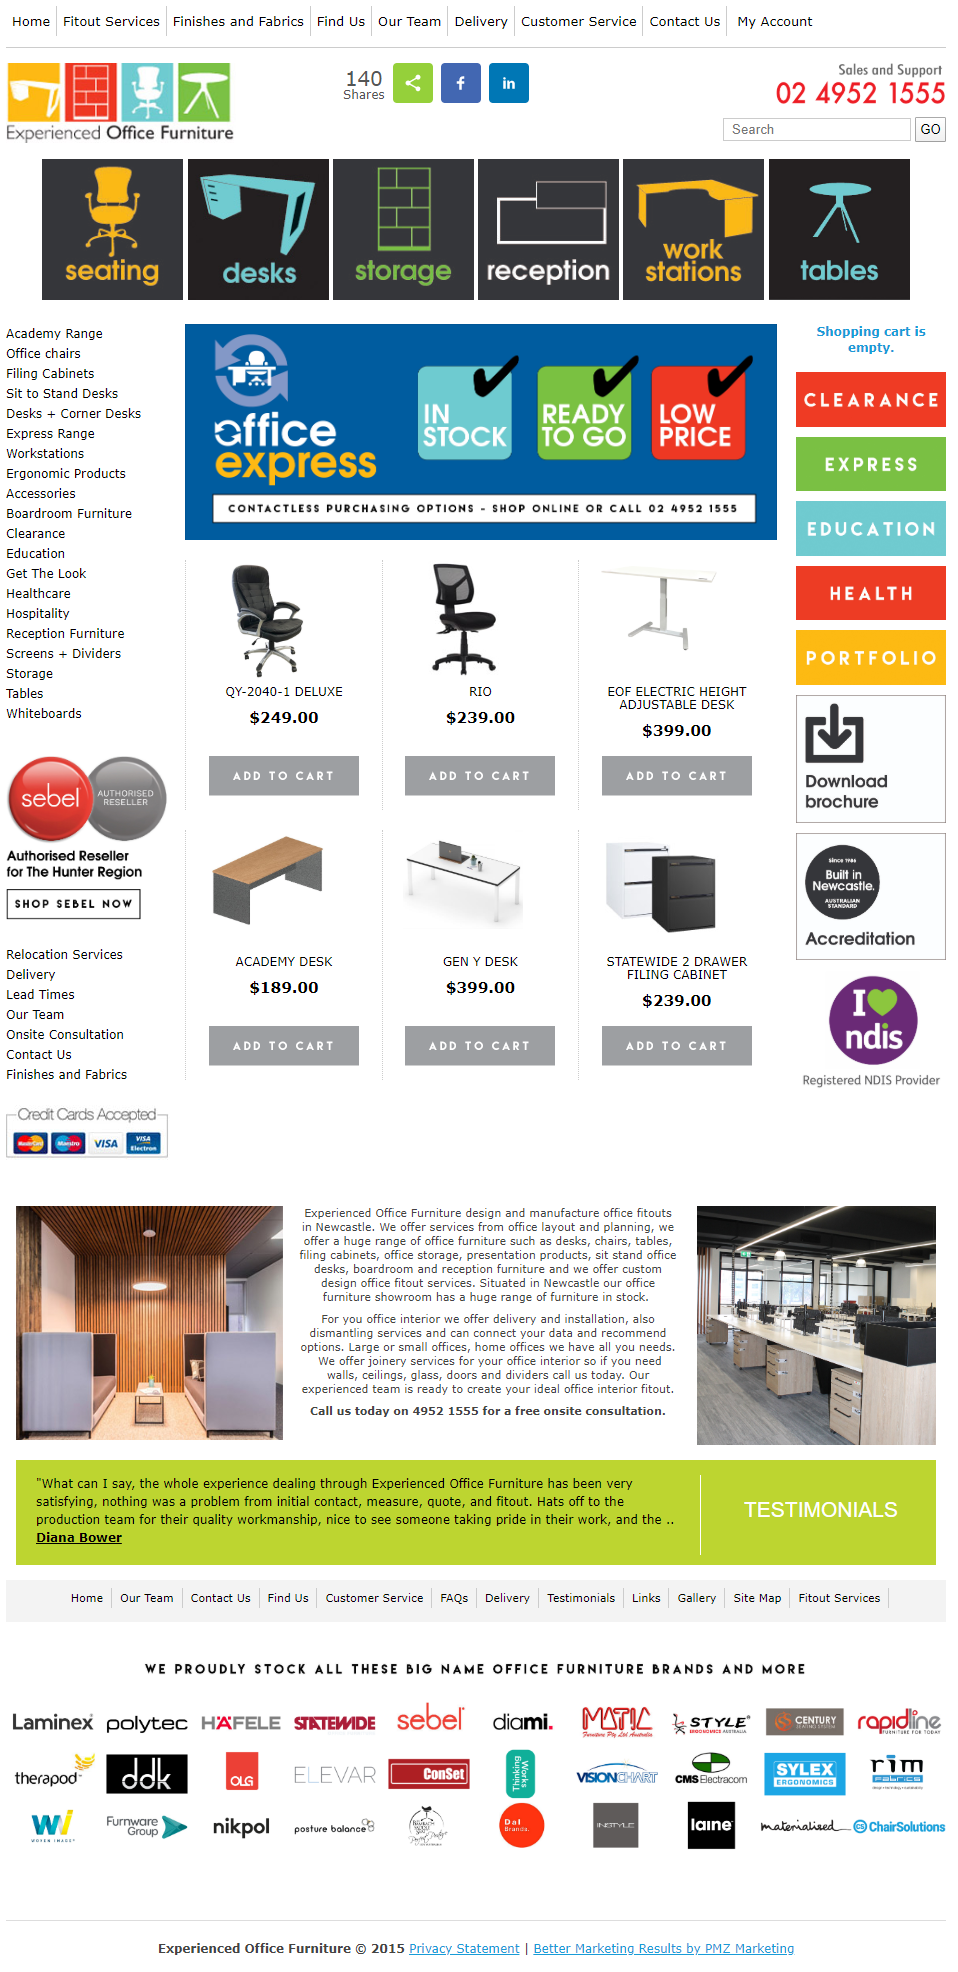 Experienced Office Furniture :: PMZ Marketing Client